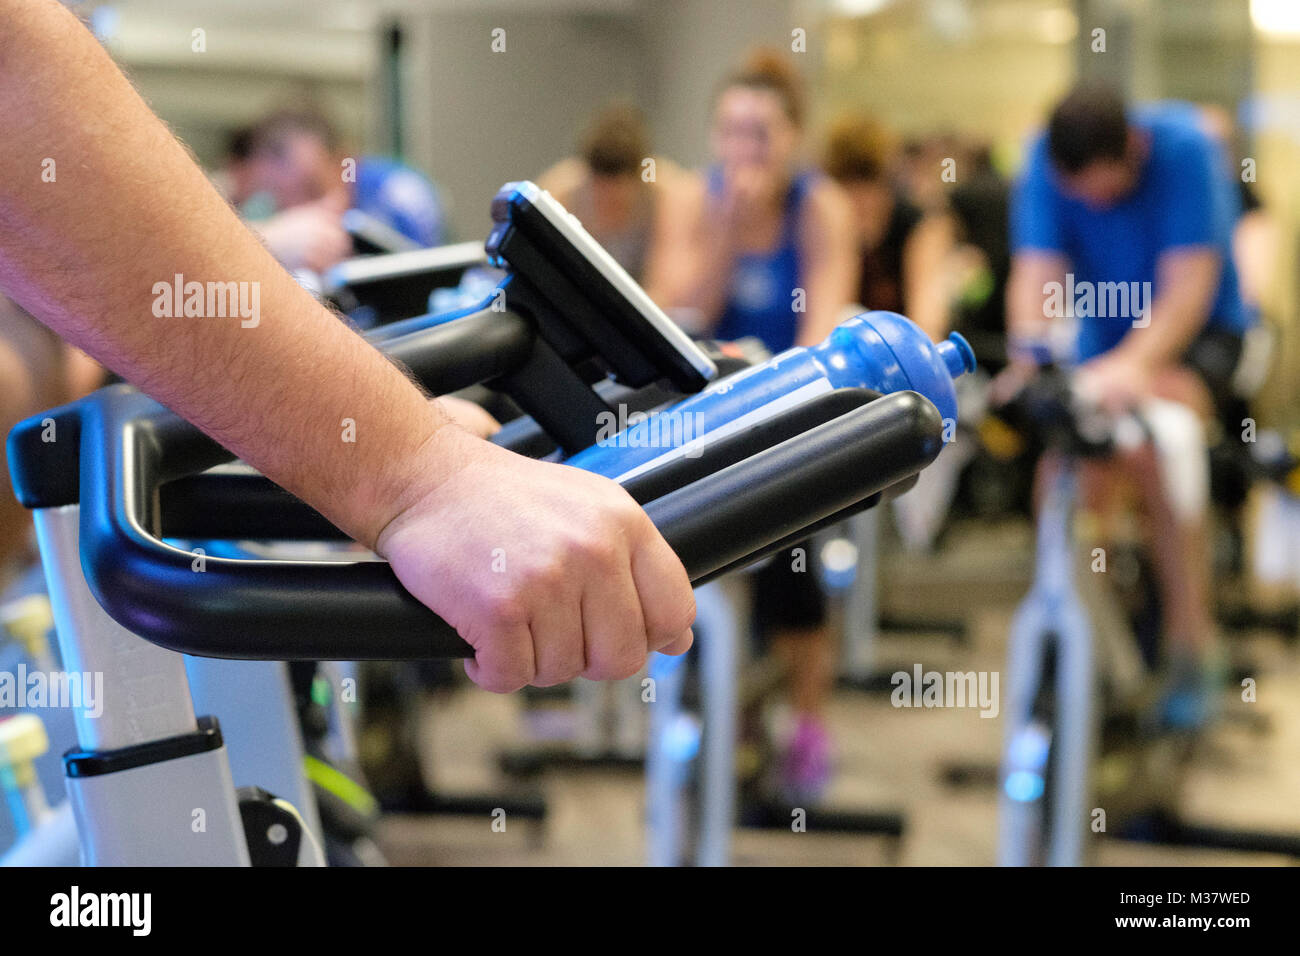 Close up of person during a spinning class at the gym - Stock Image